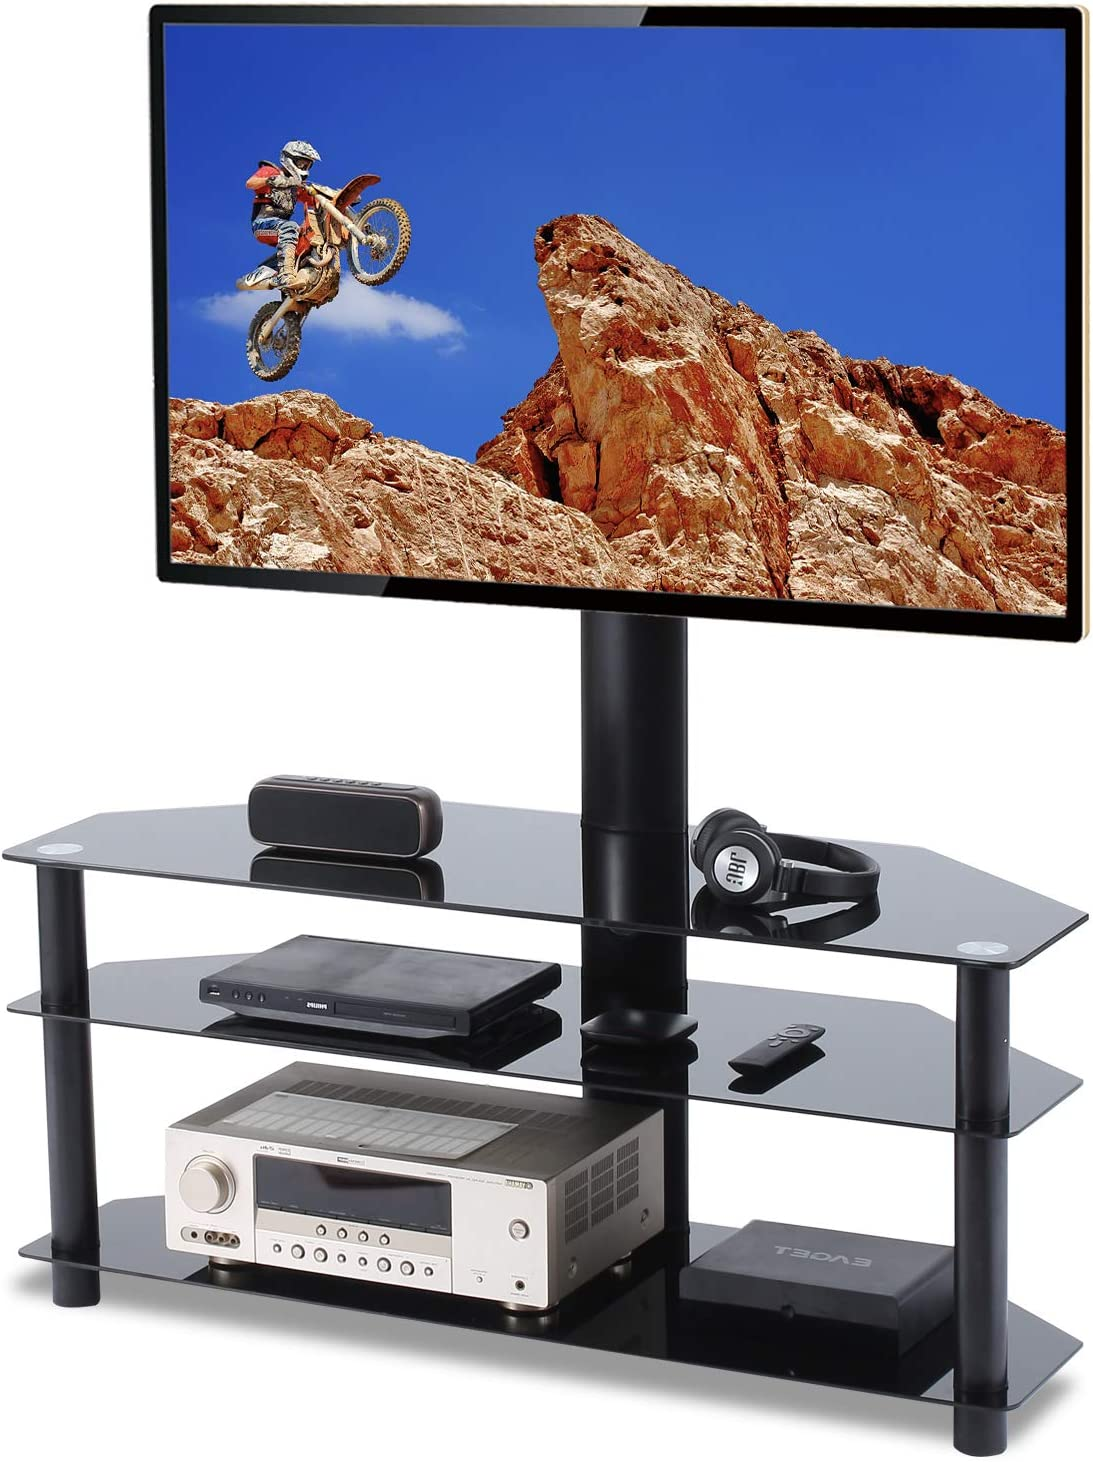 Floor TV Stand with Swivel Mount for 26-55 inch Flat or Curved Screen TVs